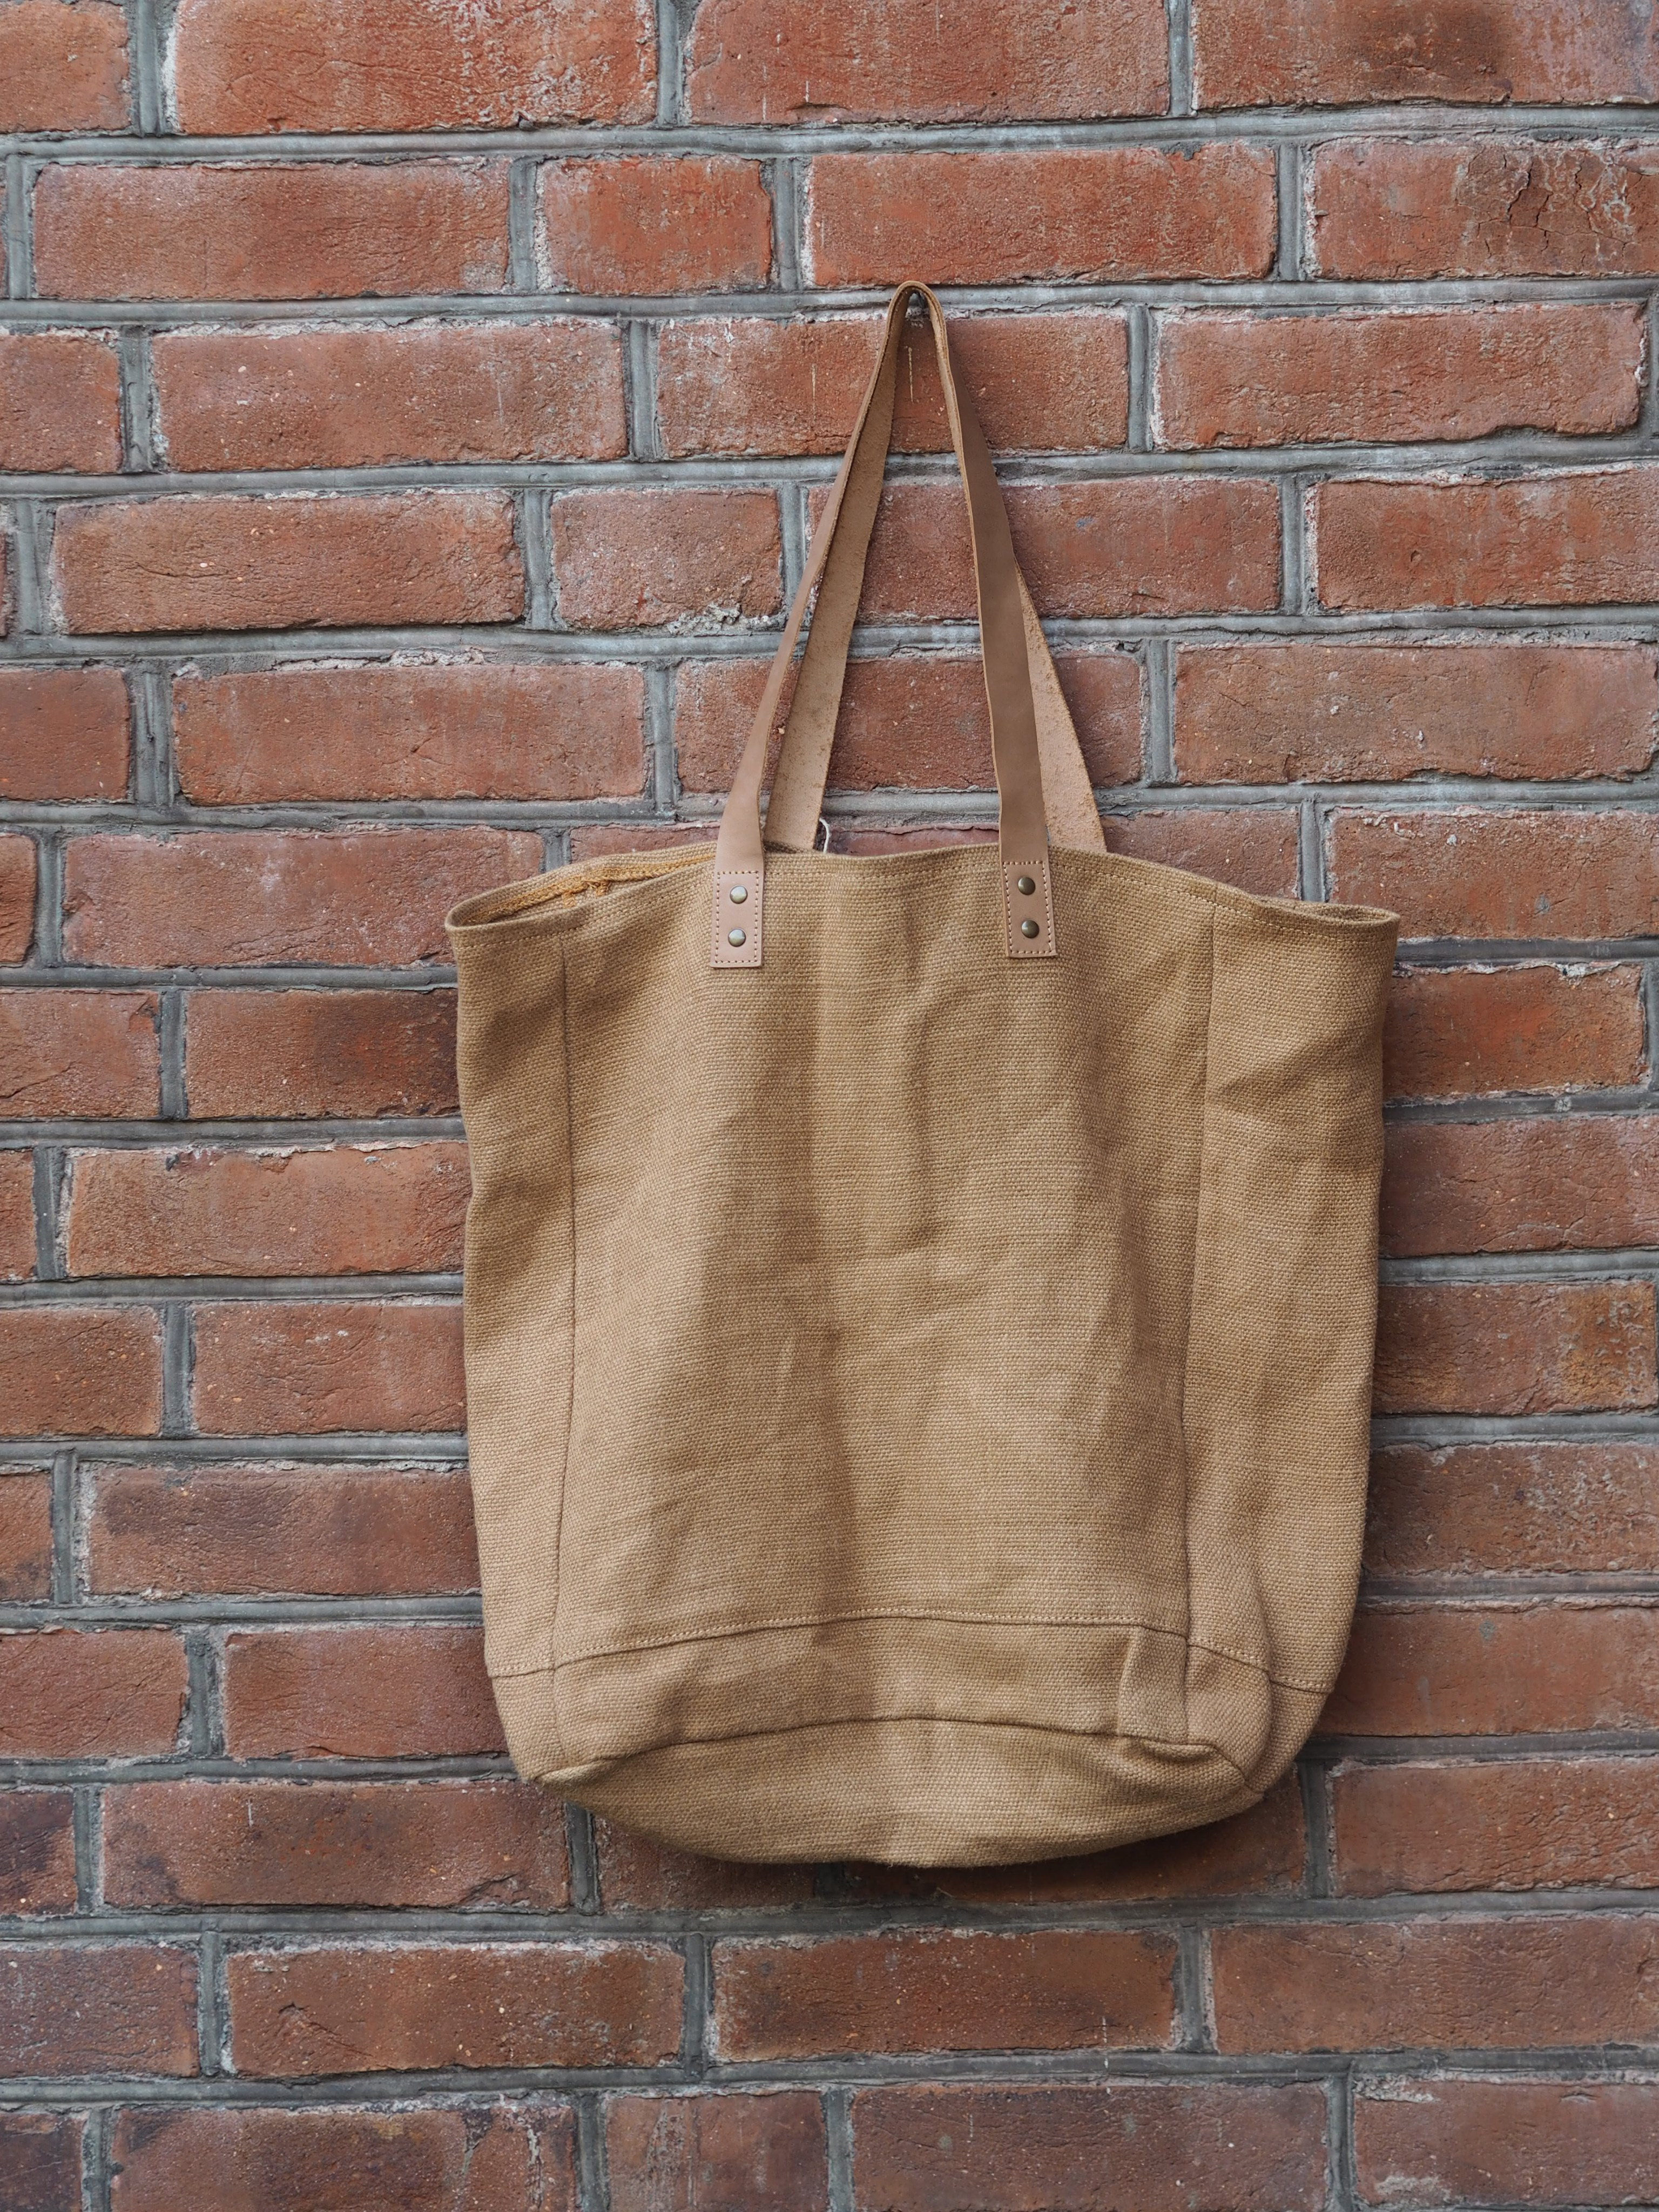 Tote W/Leather Handles - Camel, The Dharma Door